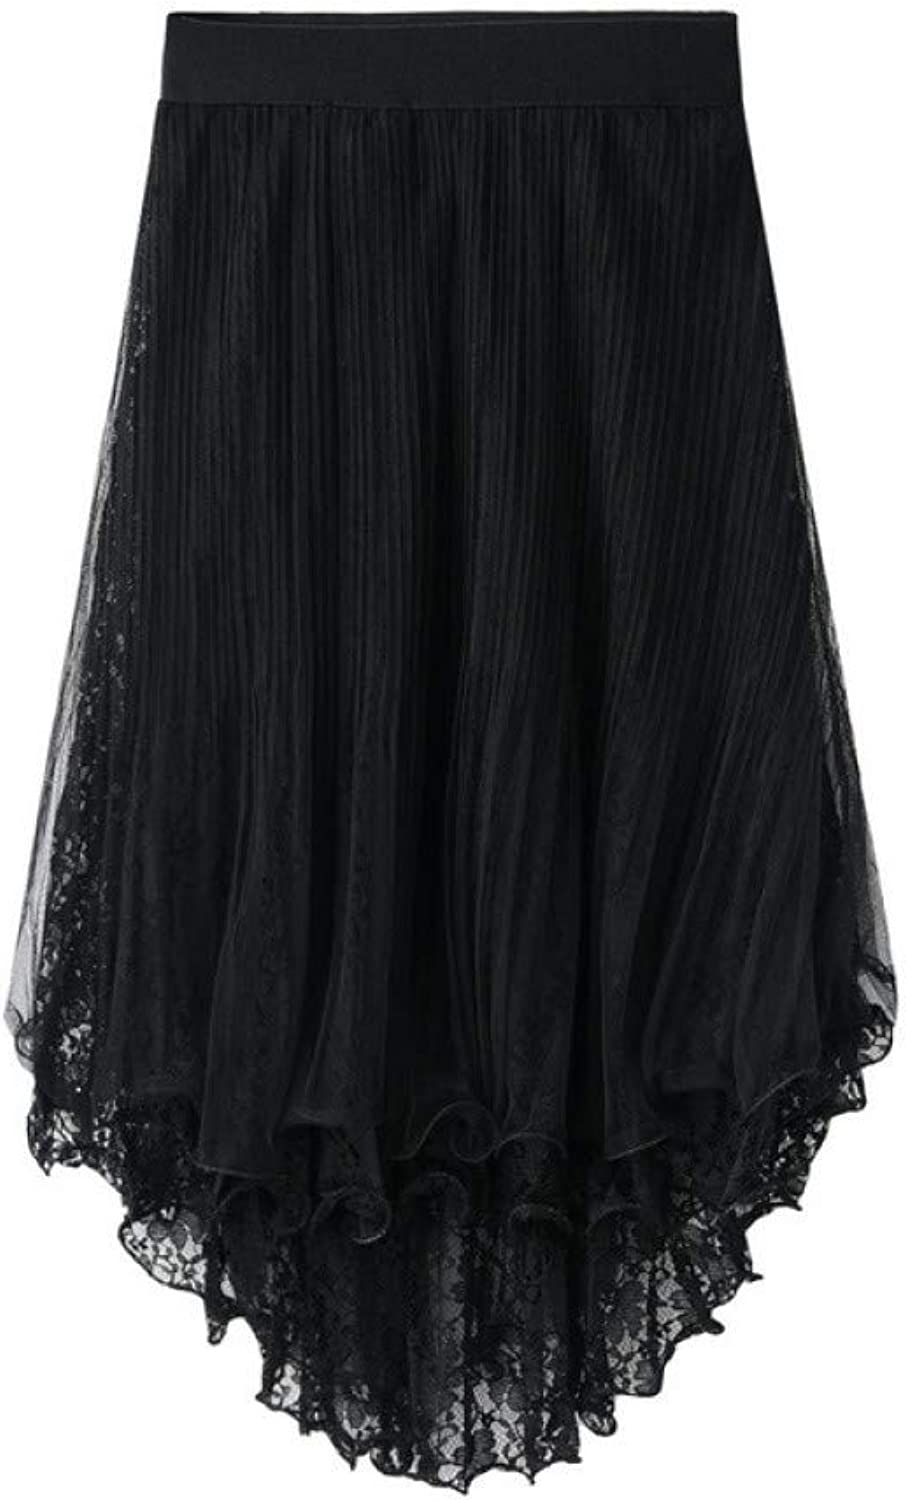 FSDFASS Skirt 2019 Summer 3 Layers Mesh Tulle Asymmetrical Lace Midi Skirts Womens Puffy Hollow Out Gothic Style